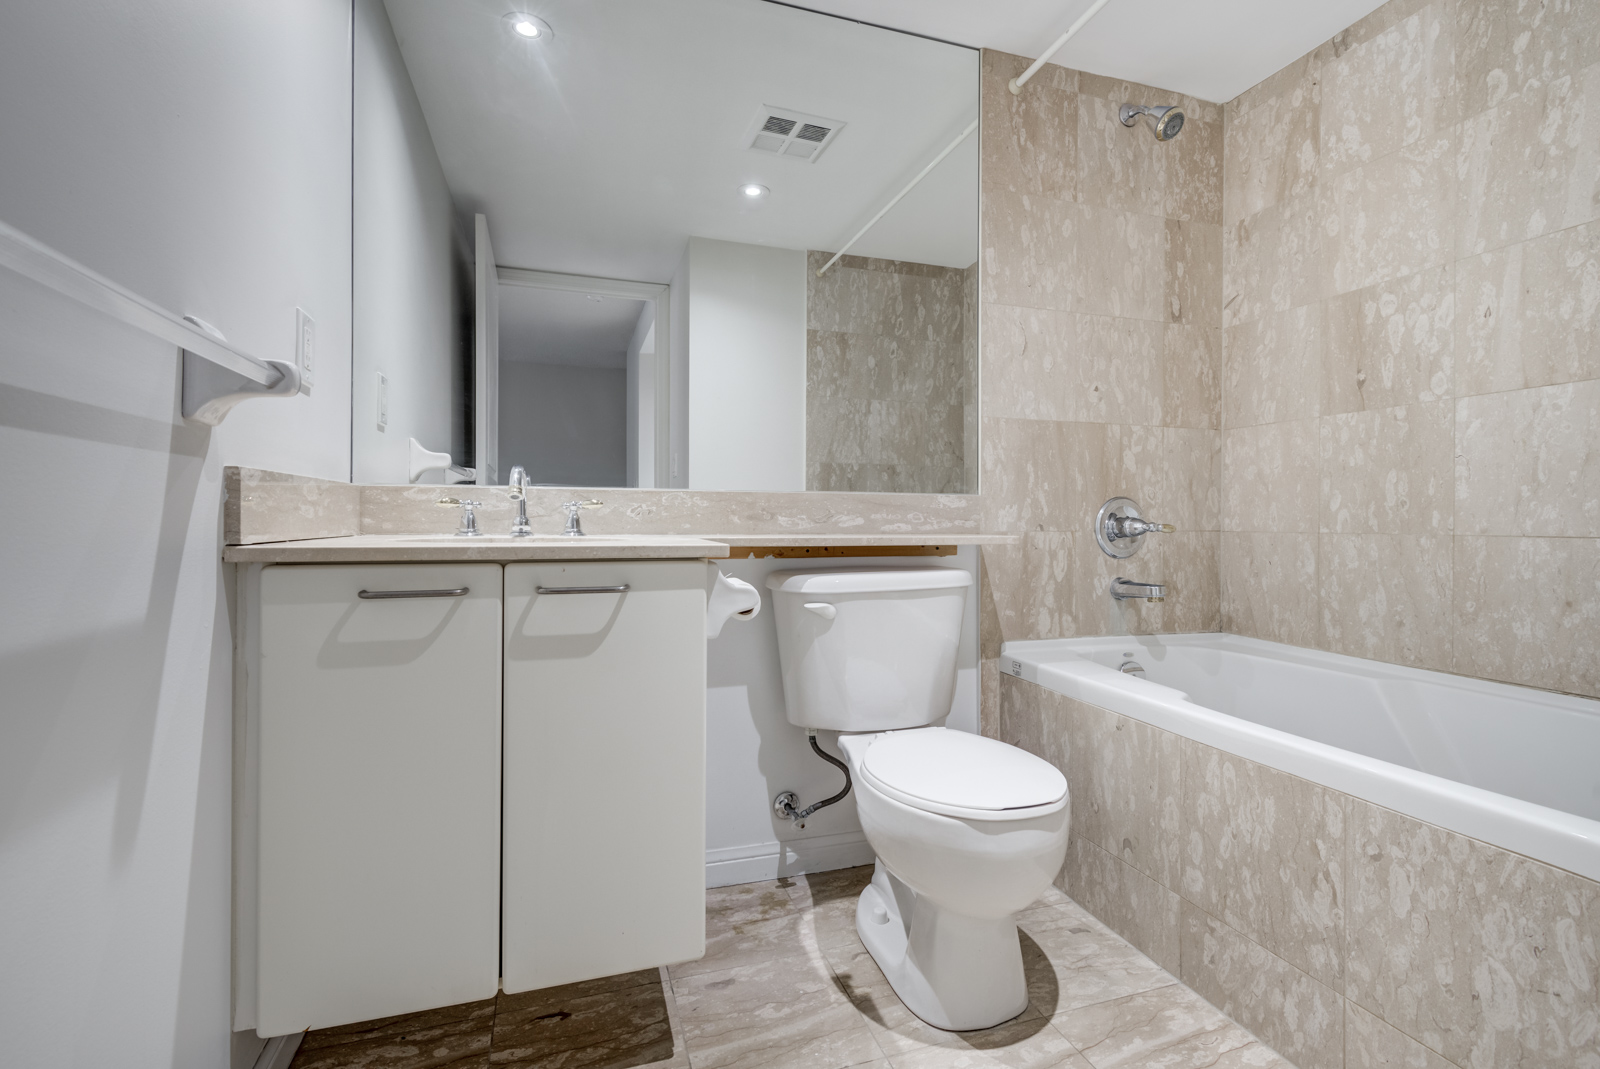 4-piece bathroom with beige tiles, tub, sink and large mirror.